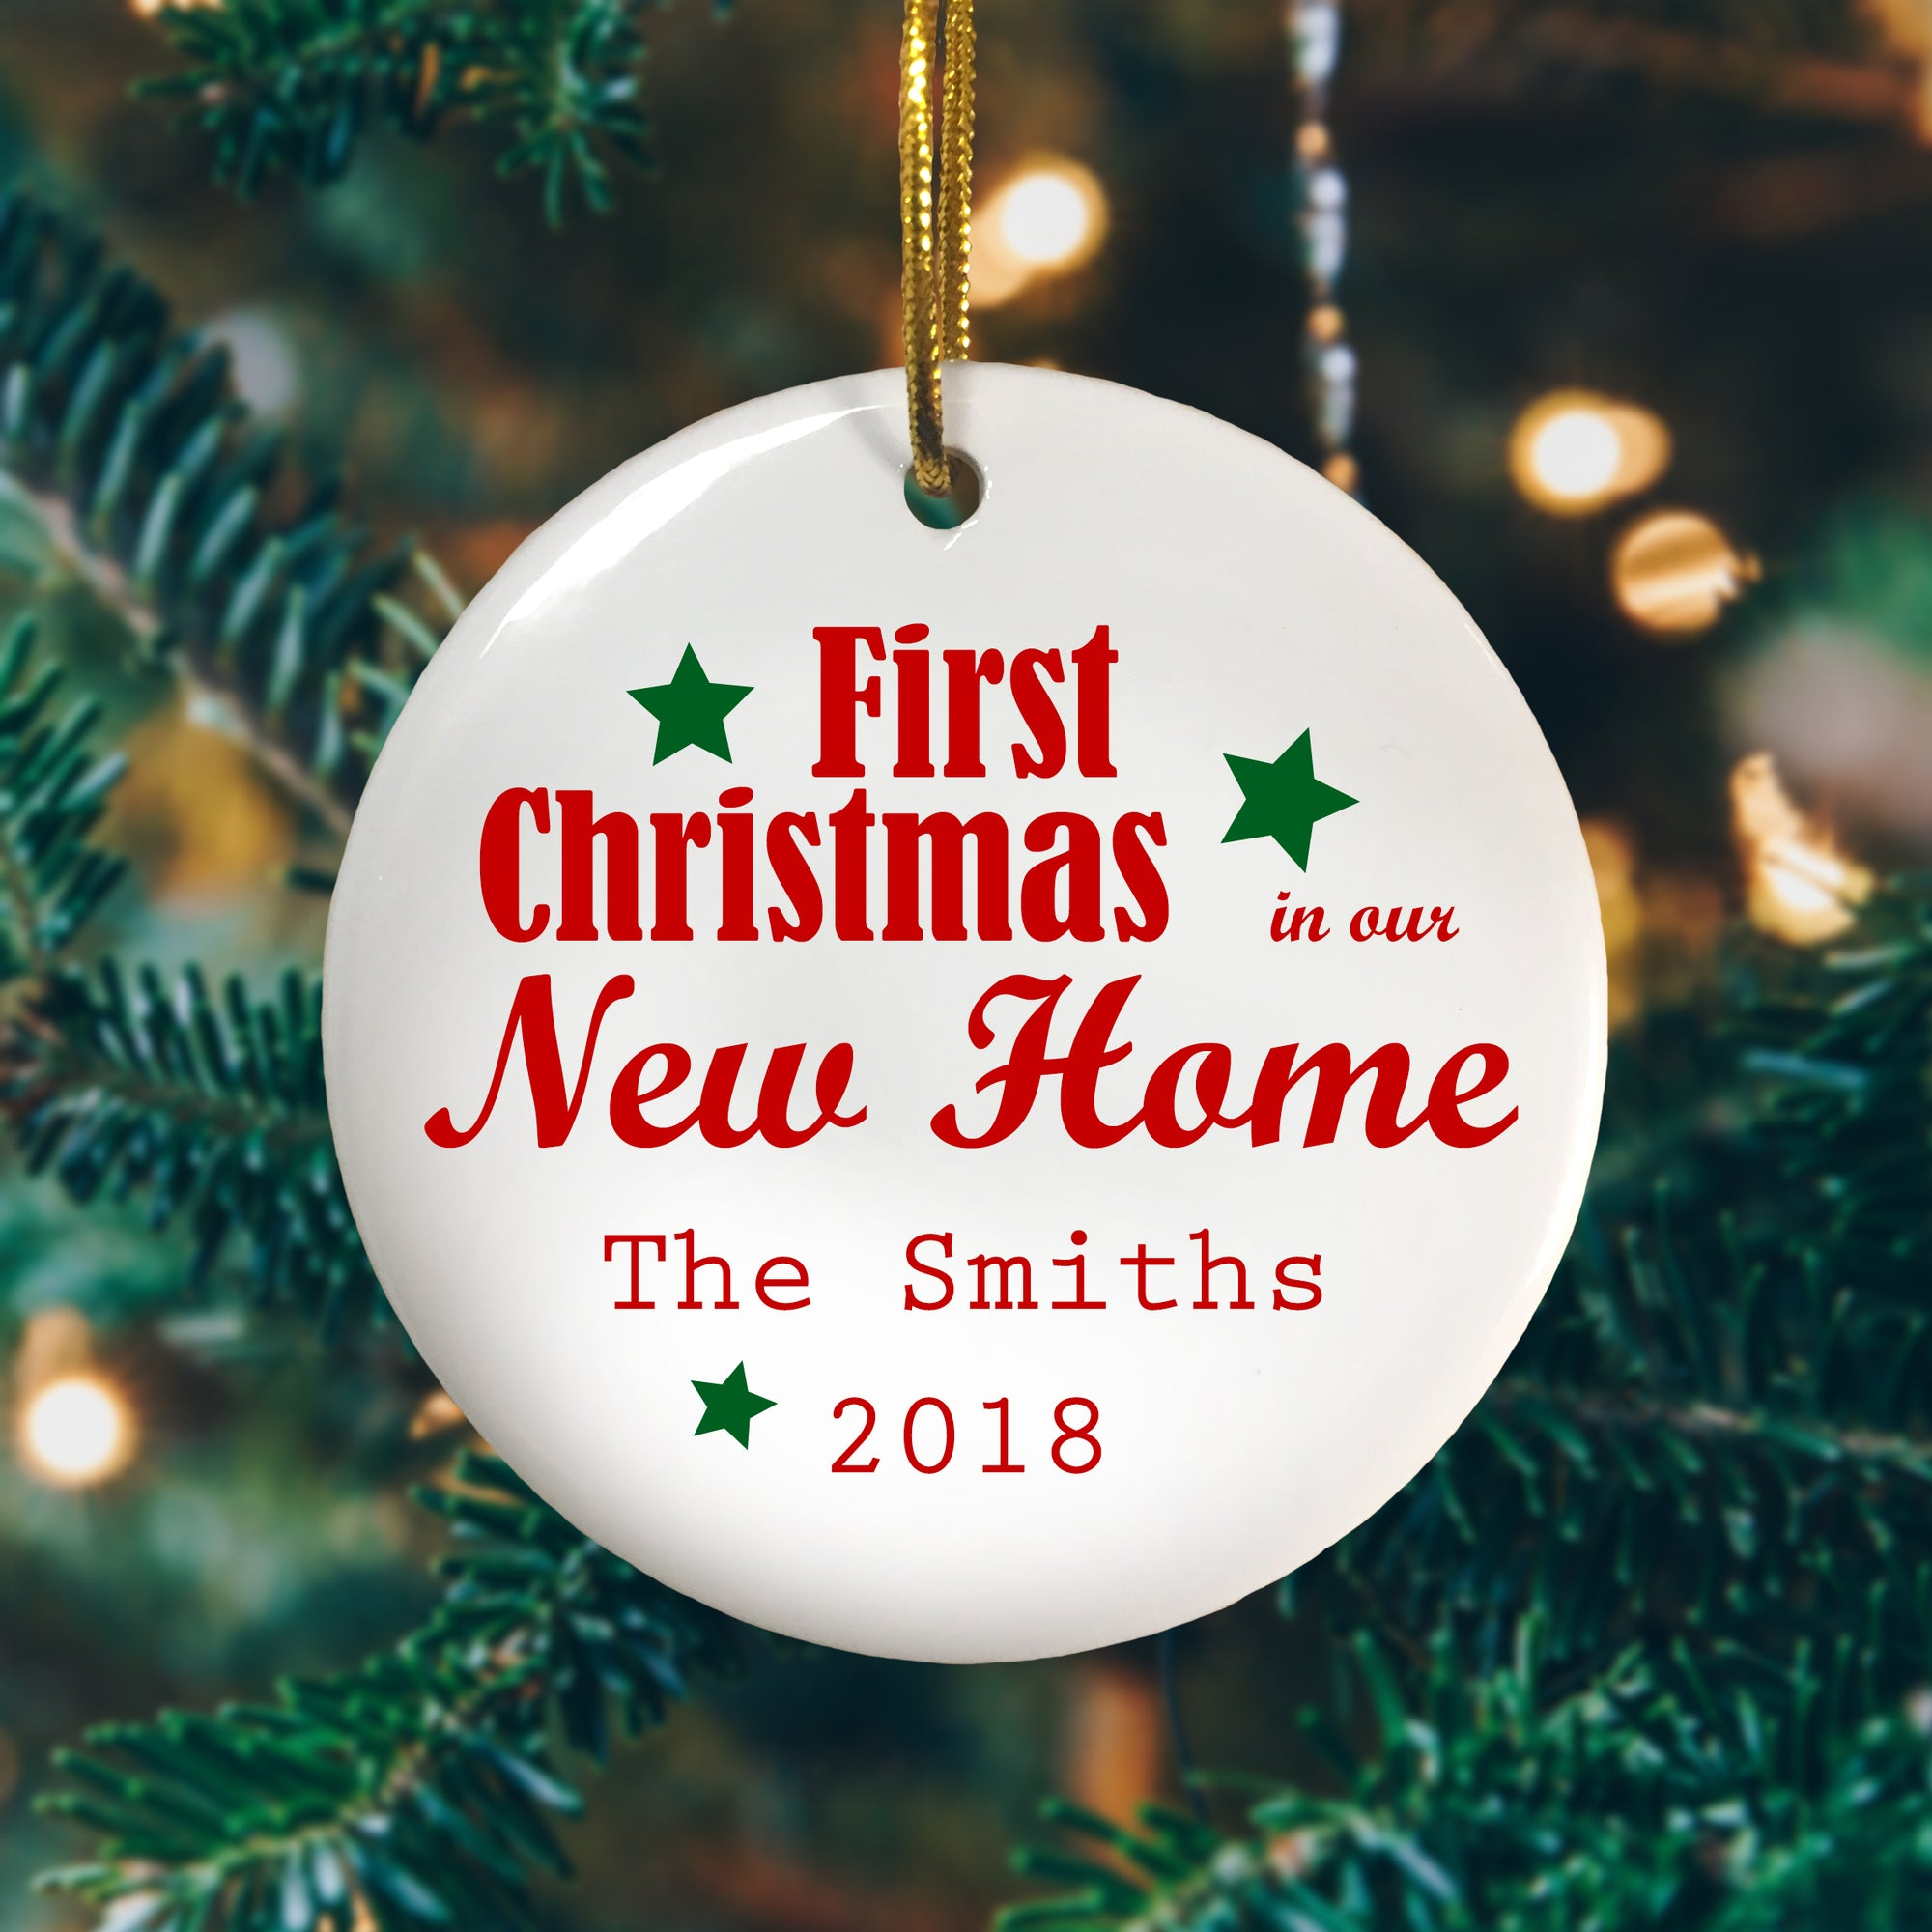 A personalised Christmas decoration celebrating a first Christmas in a new home